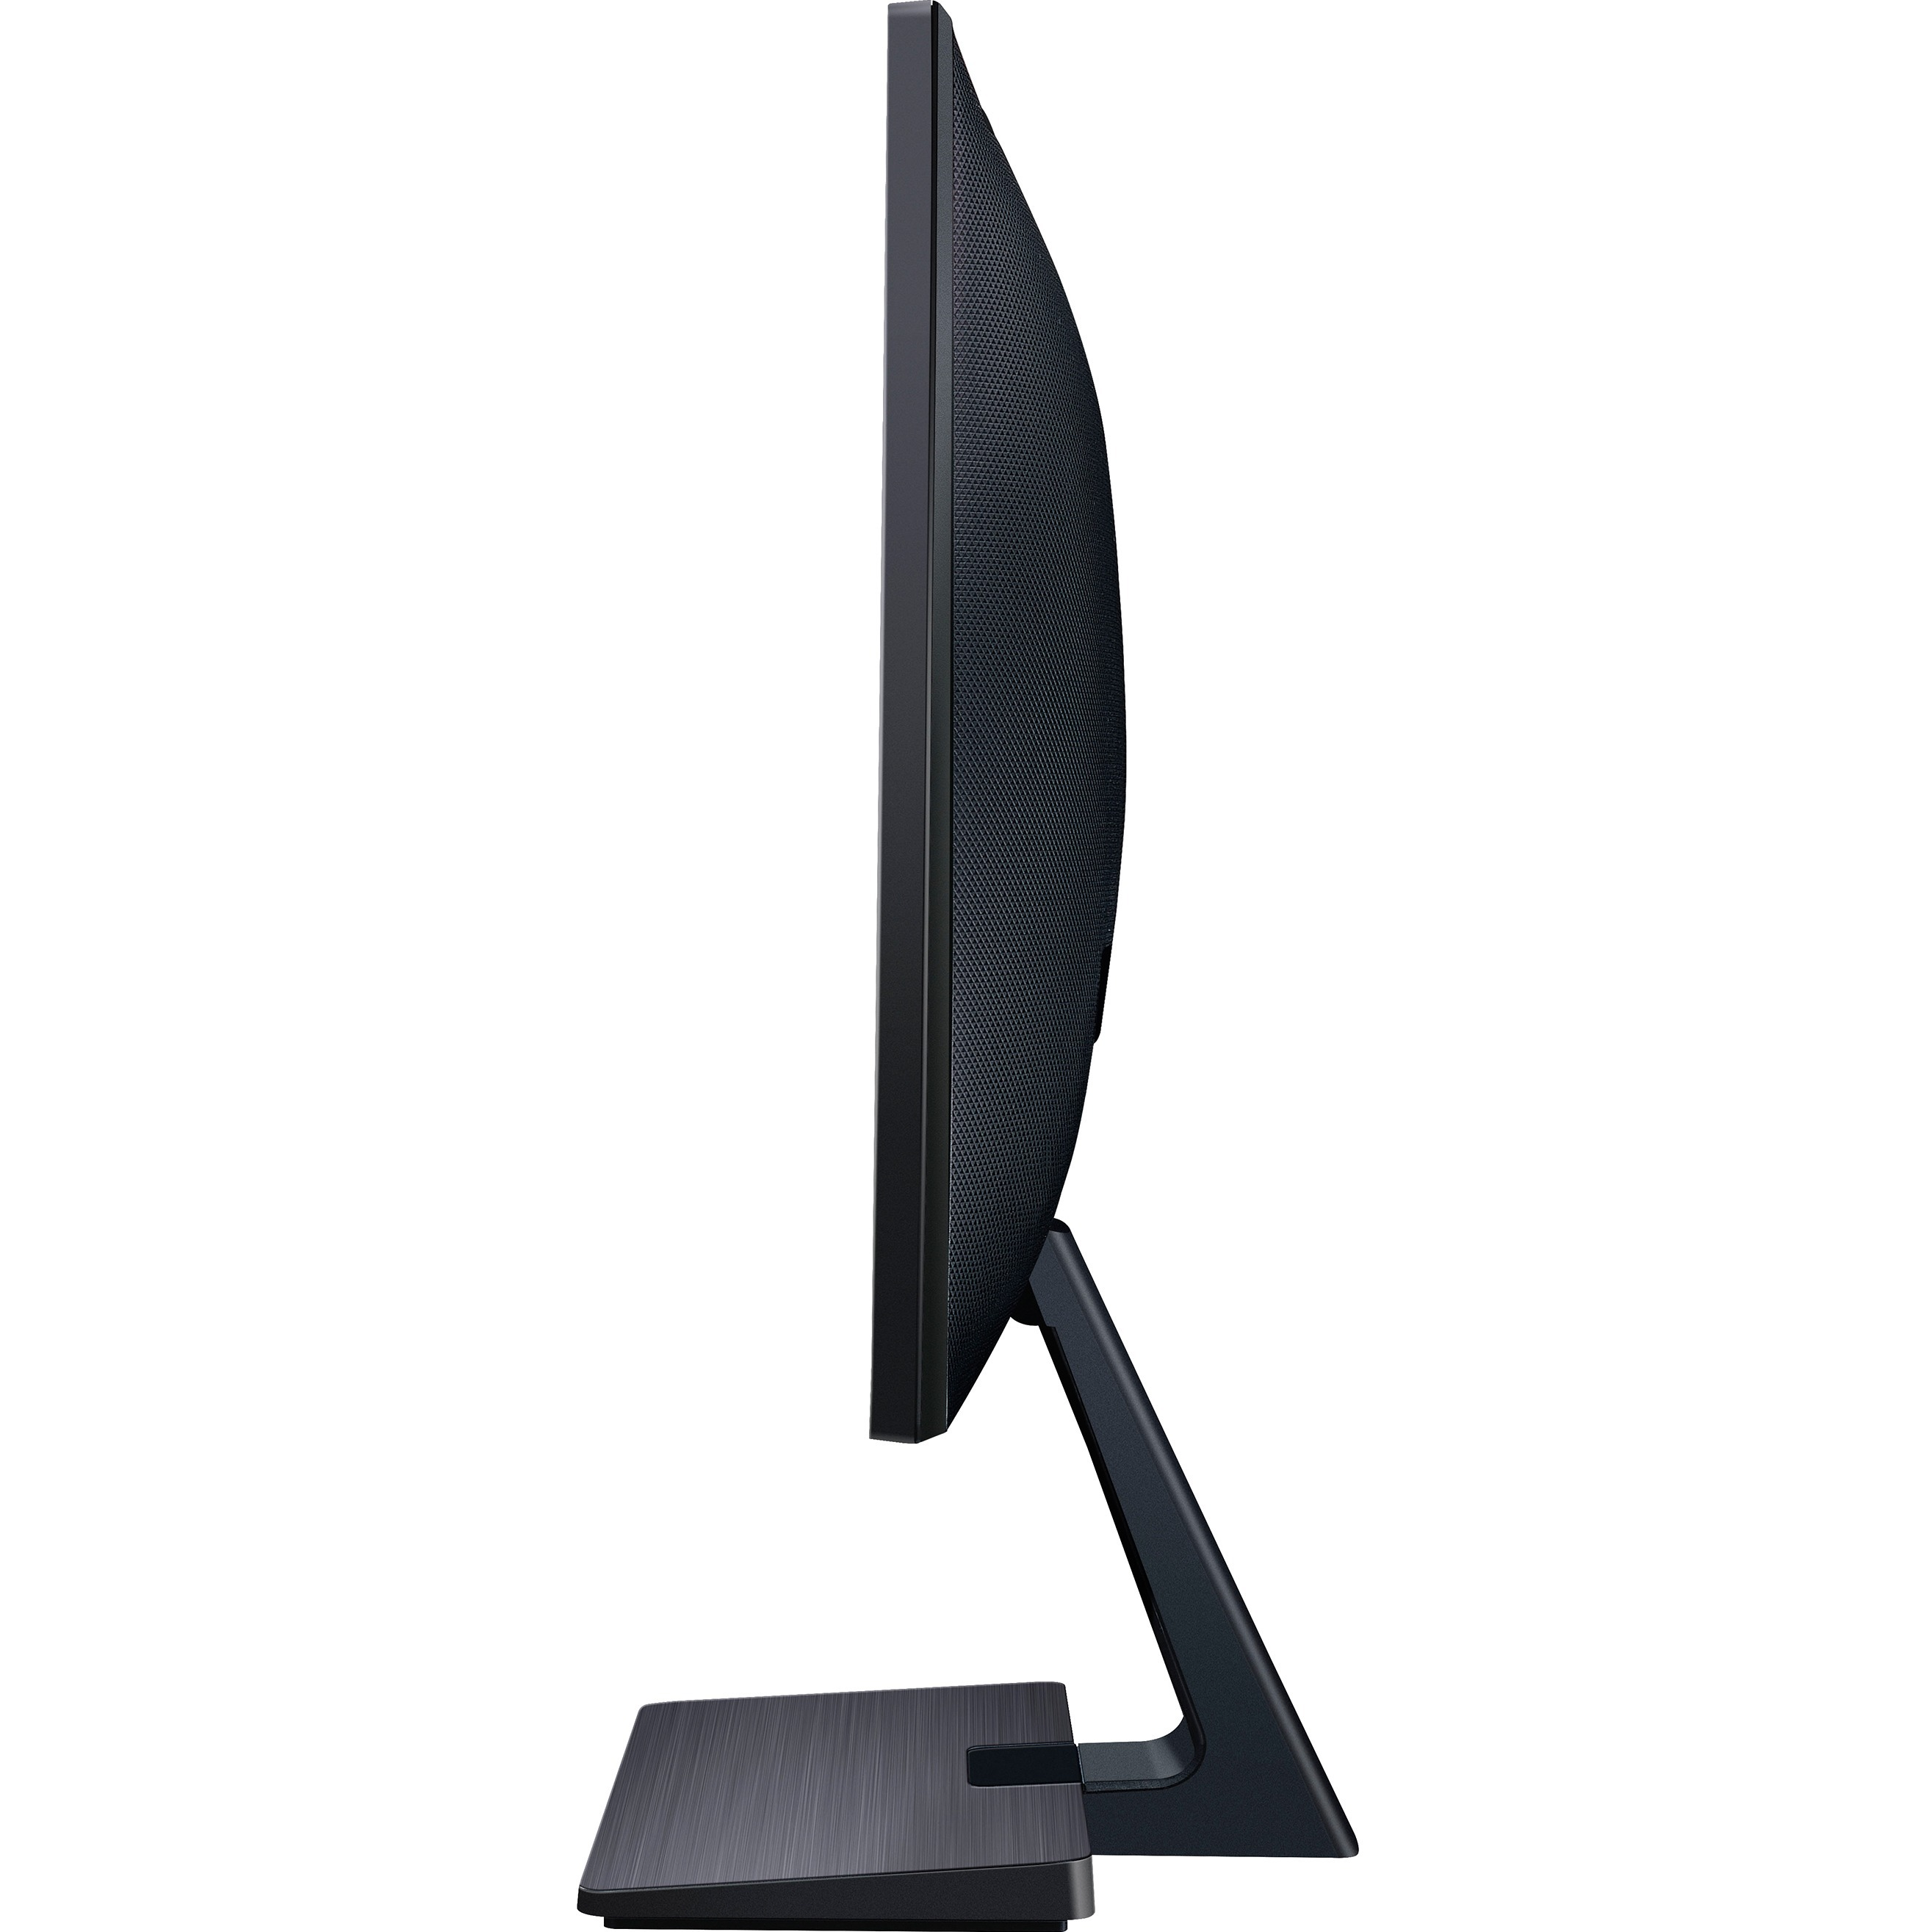 BenQ GW2270H 21.5inch LED LCD Monitor - 16:9 - 5 ms